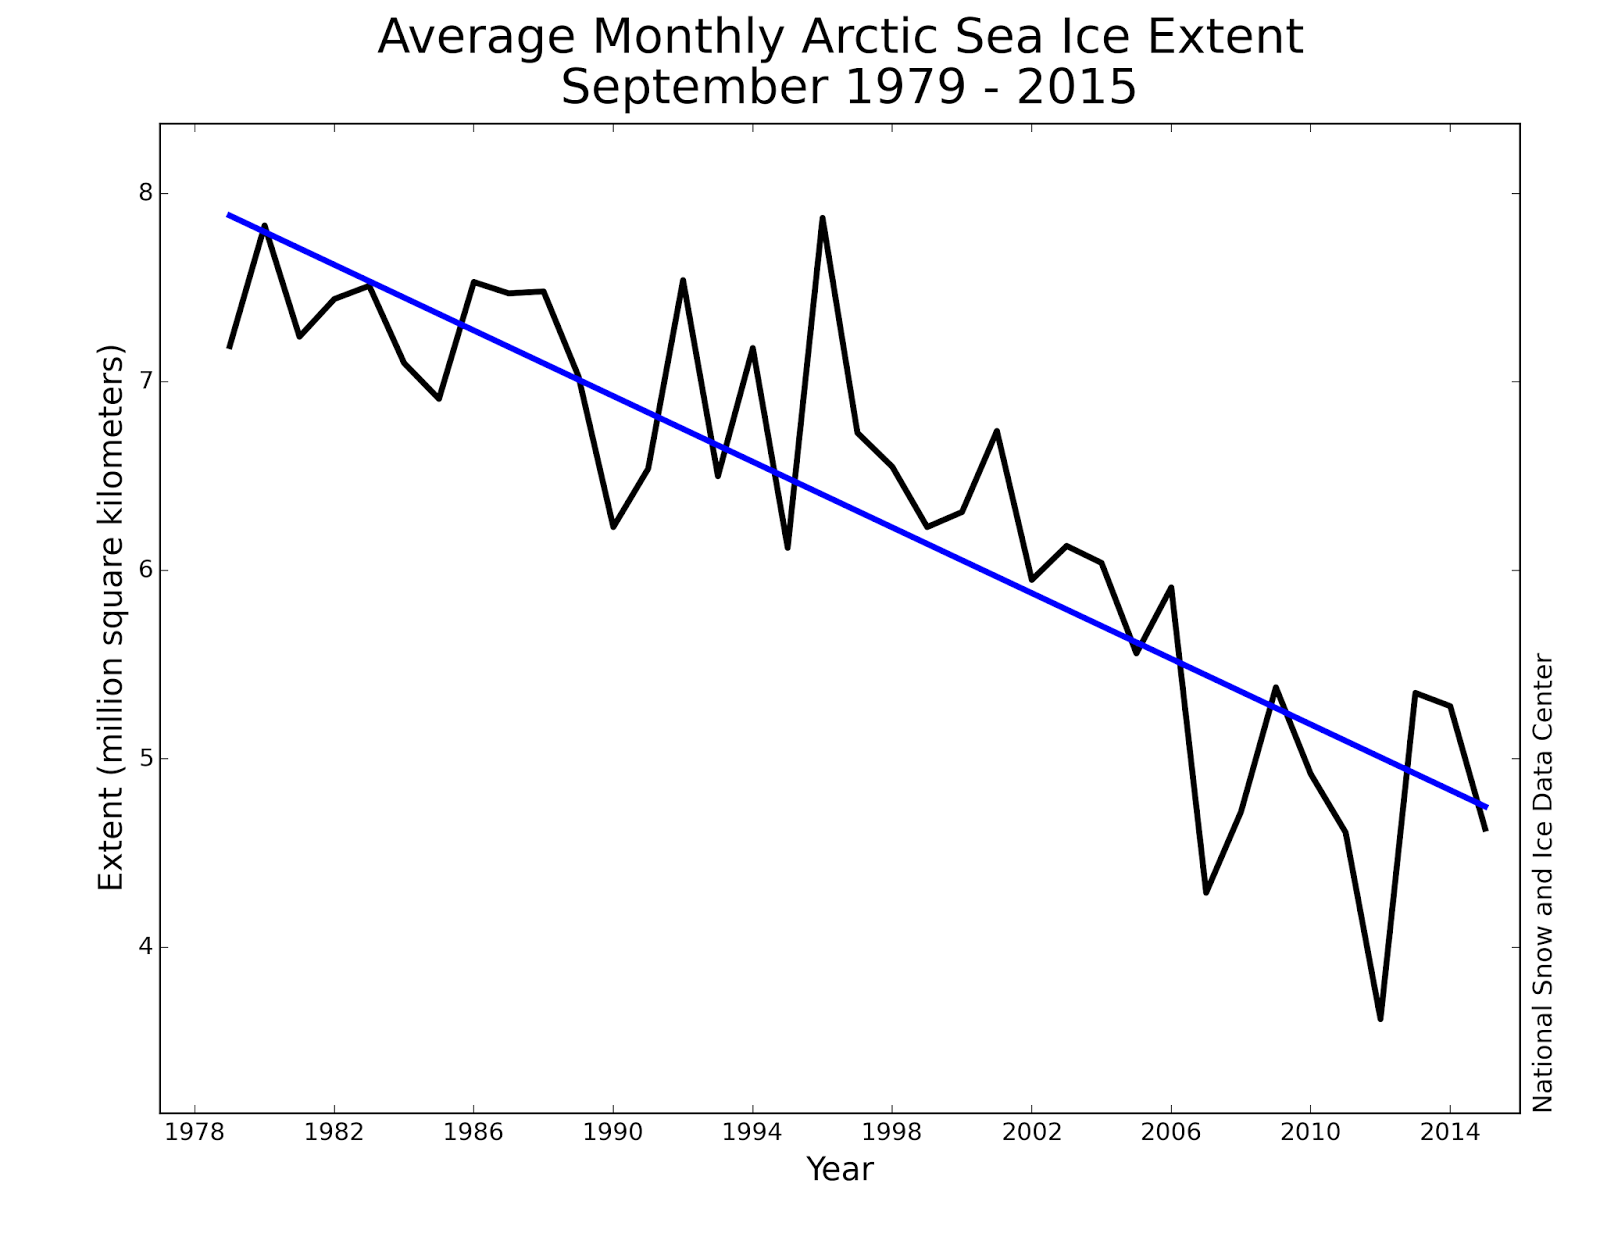 Sea Ice Extent in 1 000 000 sq km (1979 - 2015)